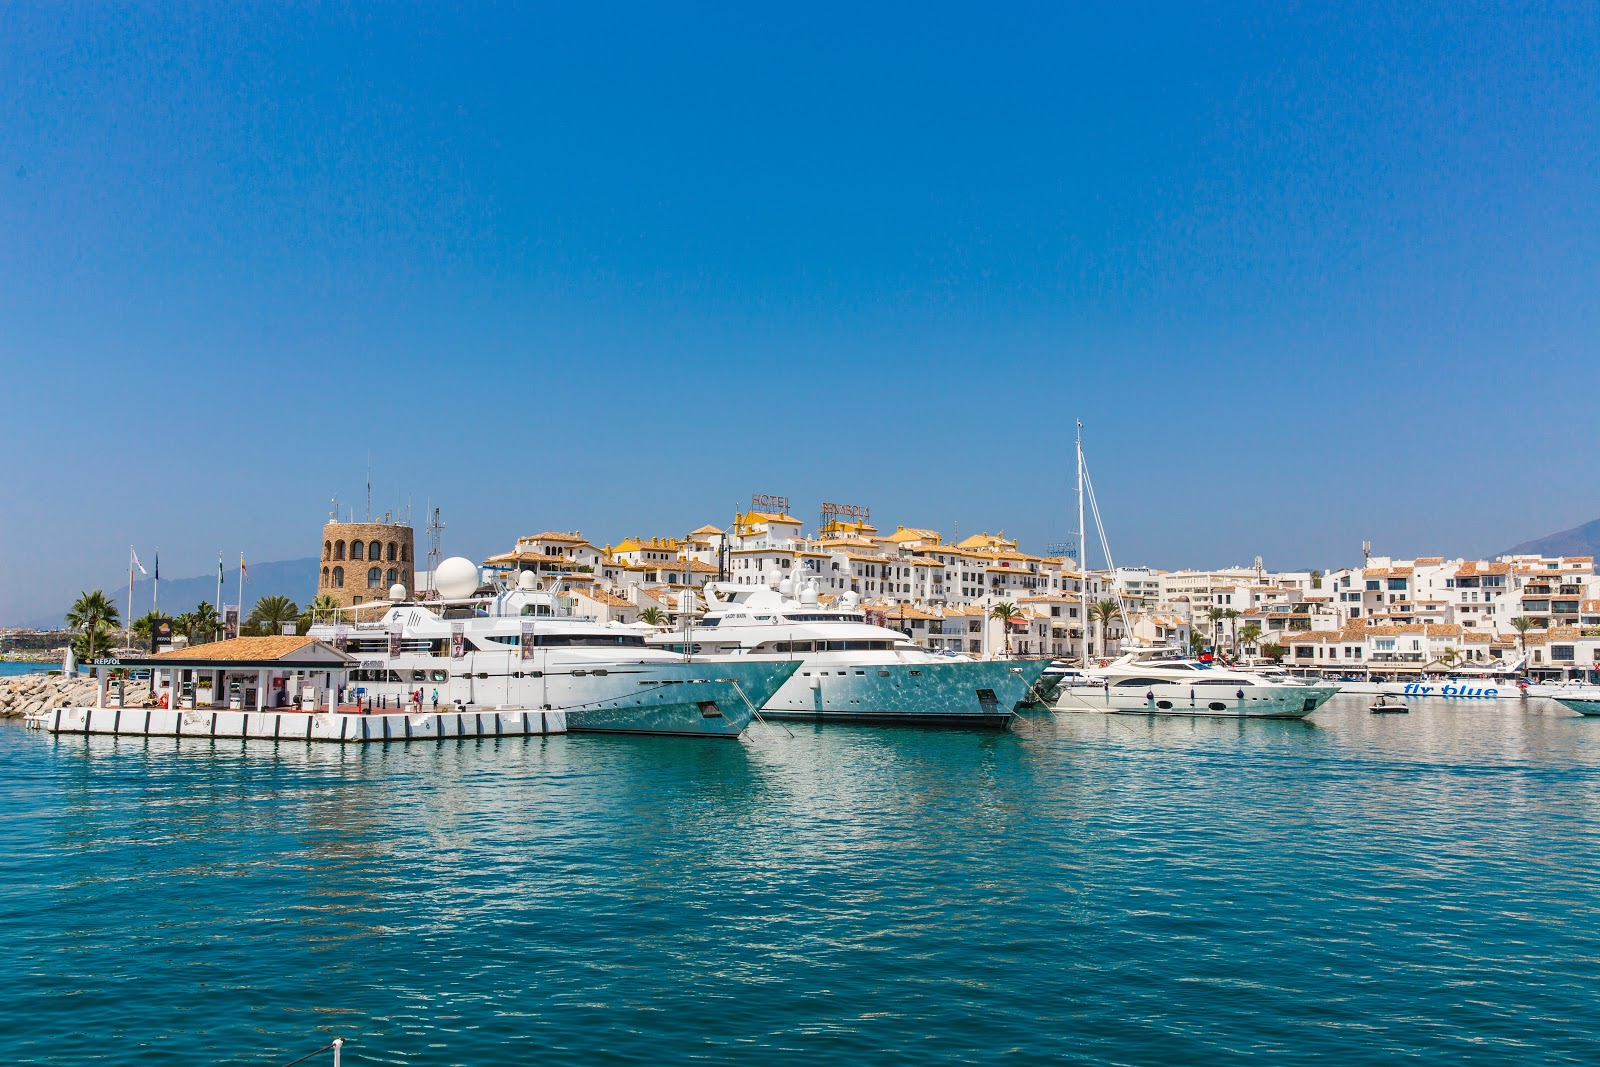 marbella puerto banus port yachts luxury boats on blue sea whitewashed buildings in background costa del sol